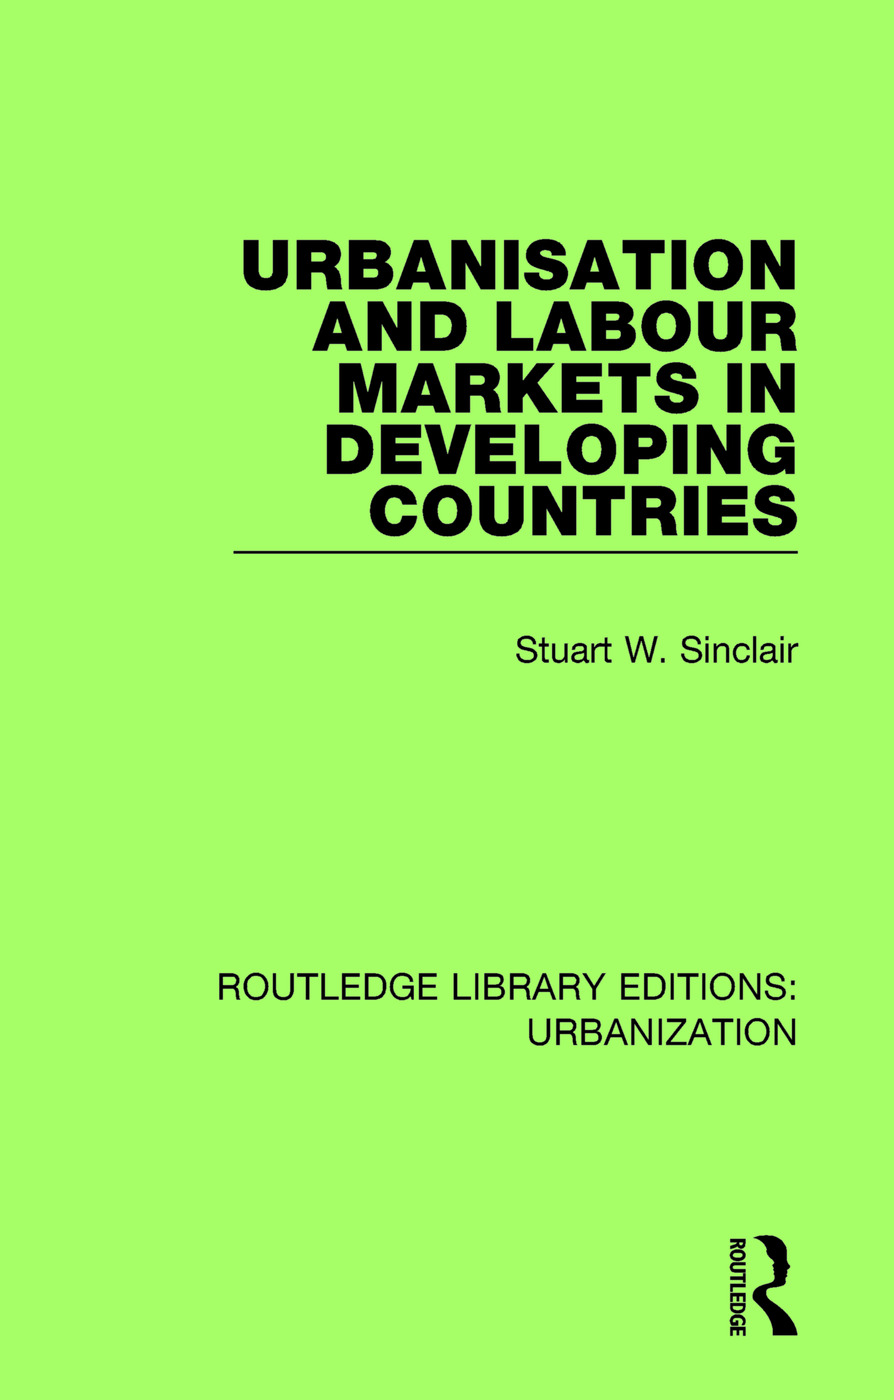 Urbanisation and Labour Markets in Developing Countries book cover